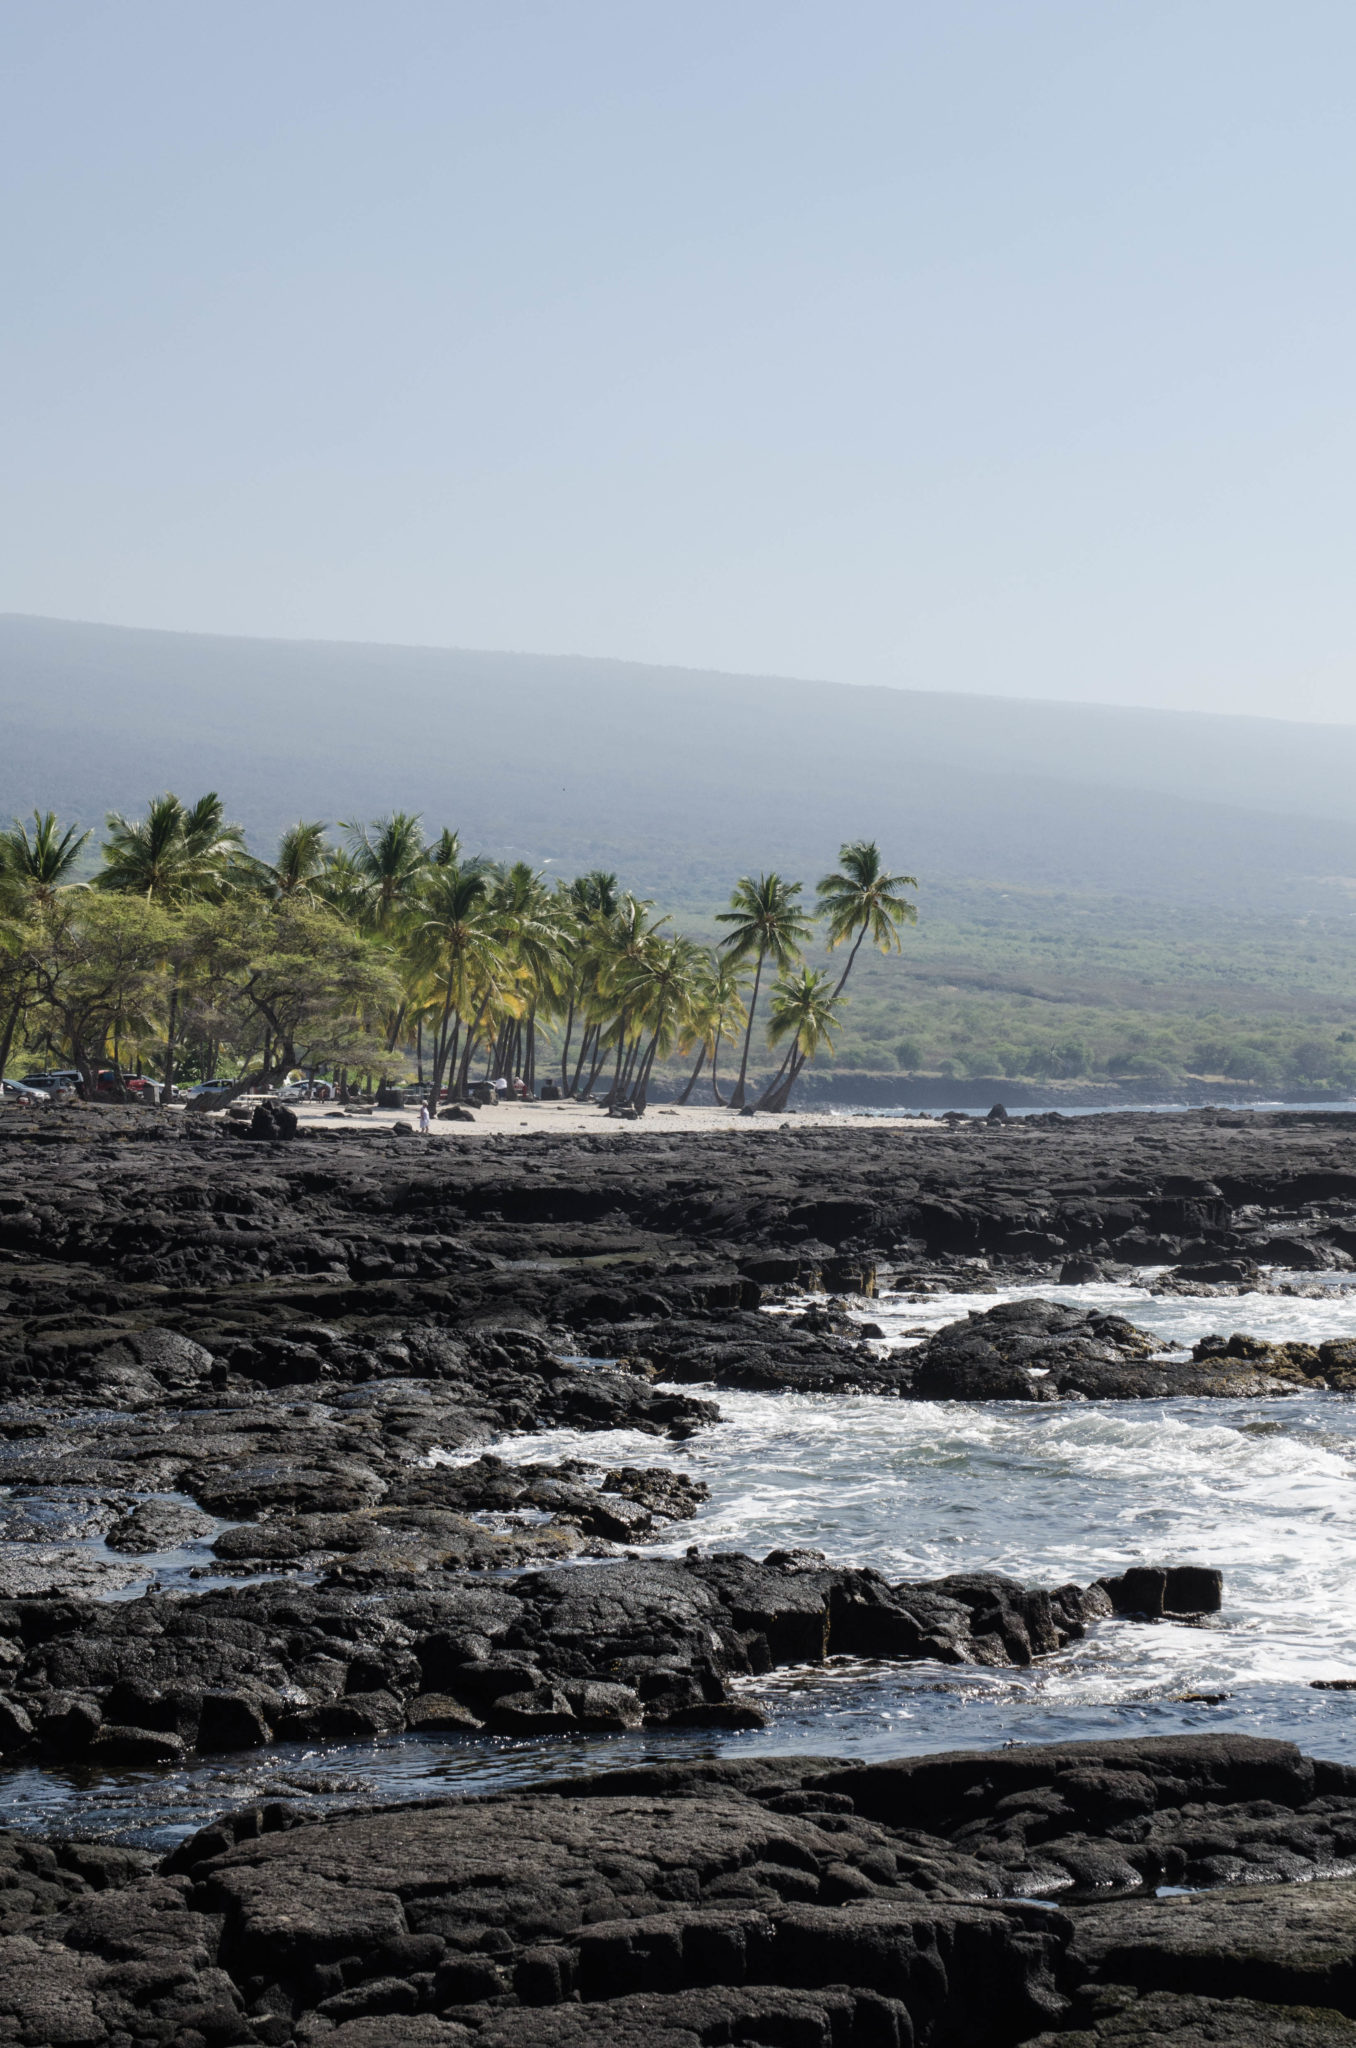 Hawaii Guide: Bathing in between volcanic sand and a stunning landscape? Well, one thing to do in Hawaii for sure.